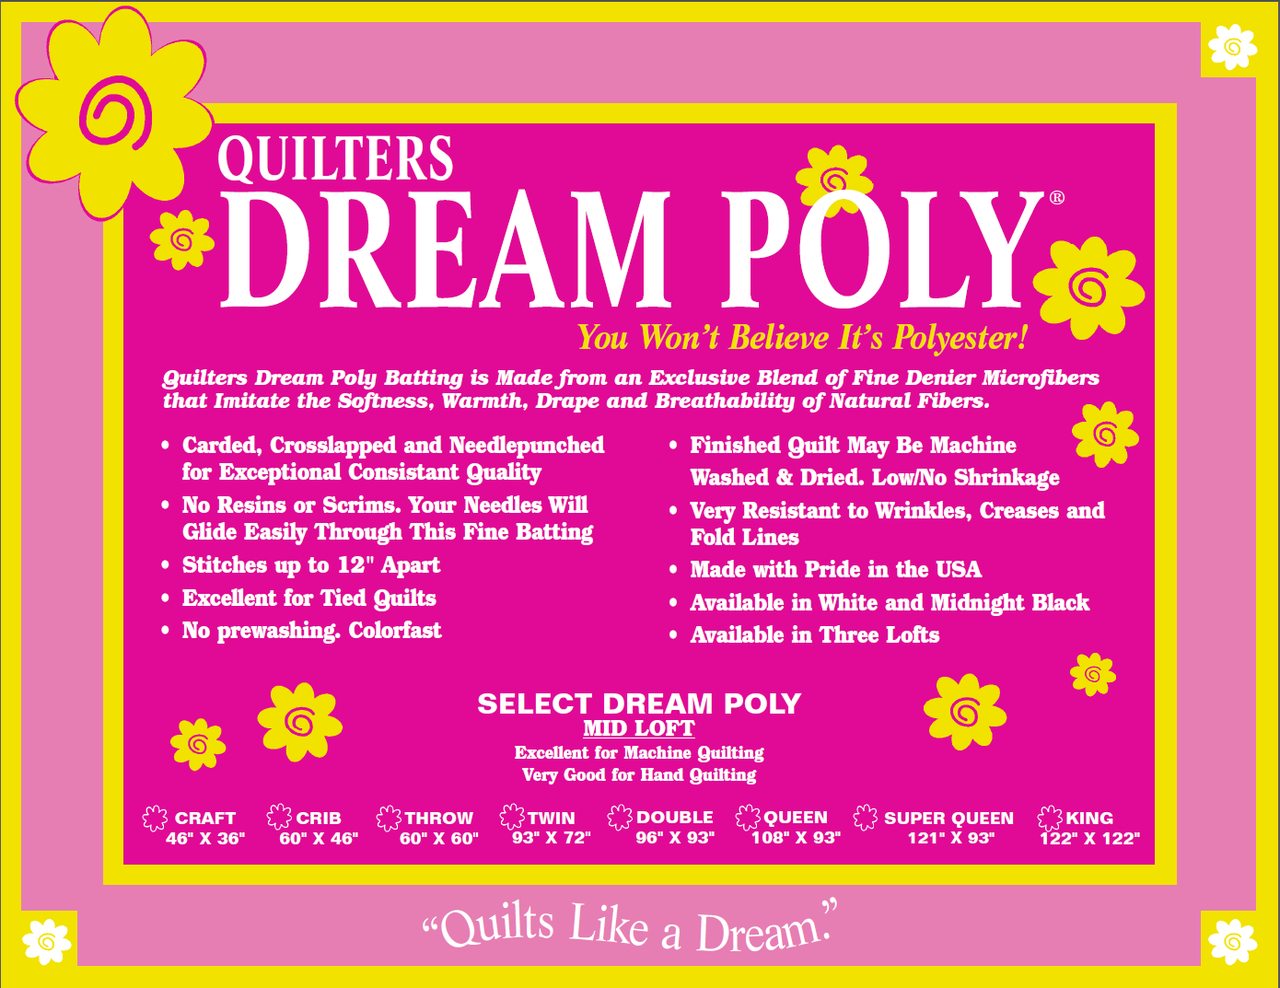 quilters dream poly select